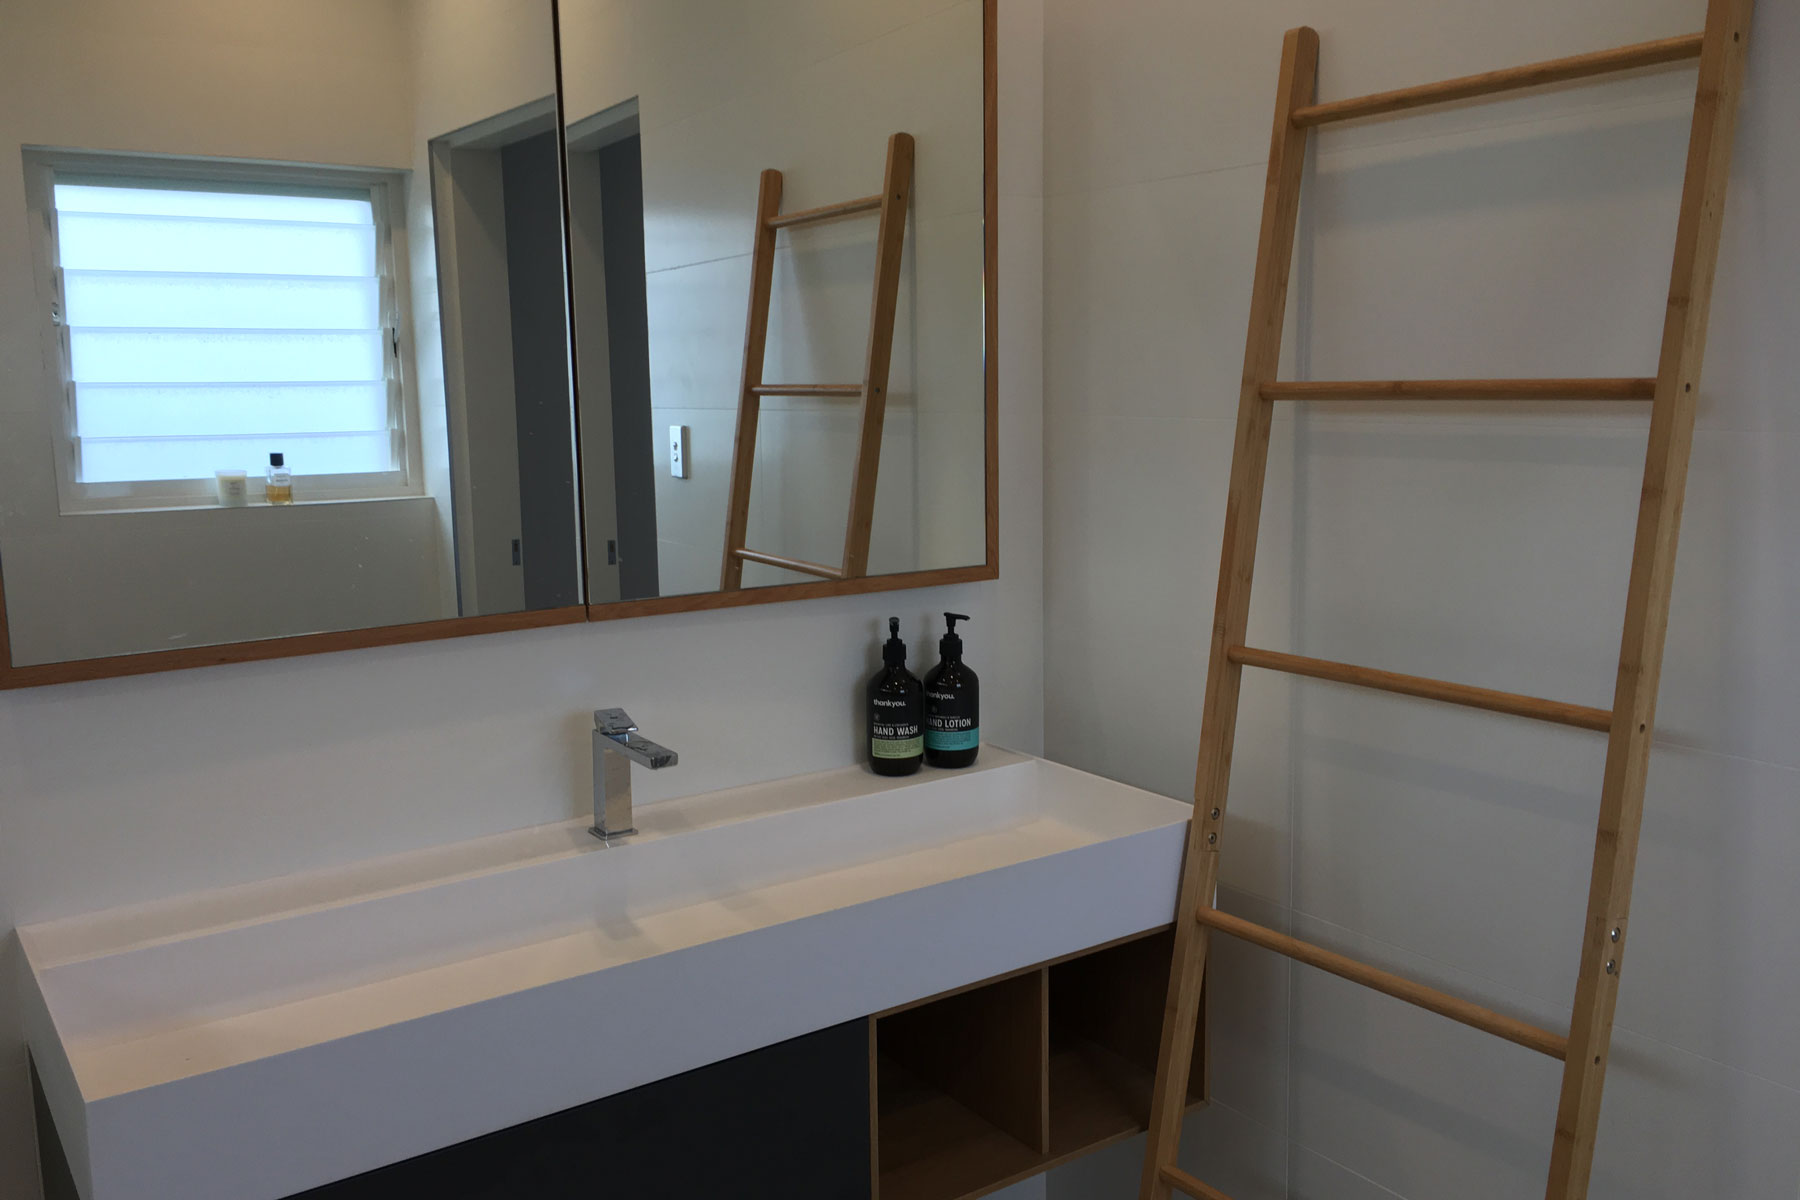 Corinna bathroom - before